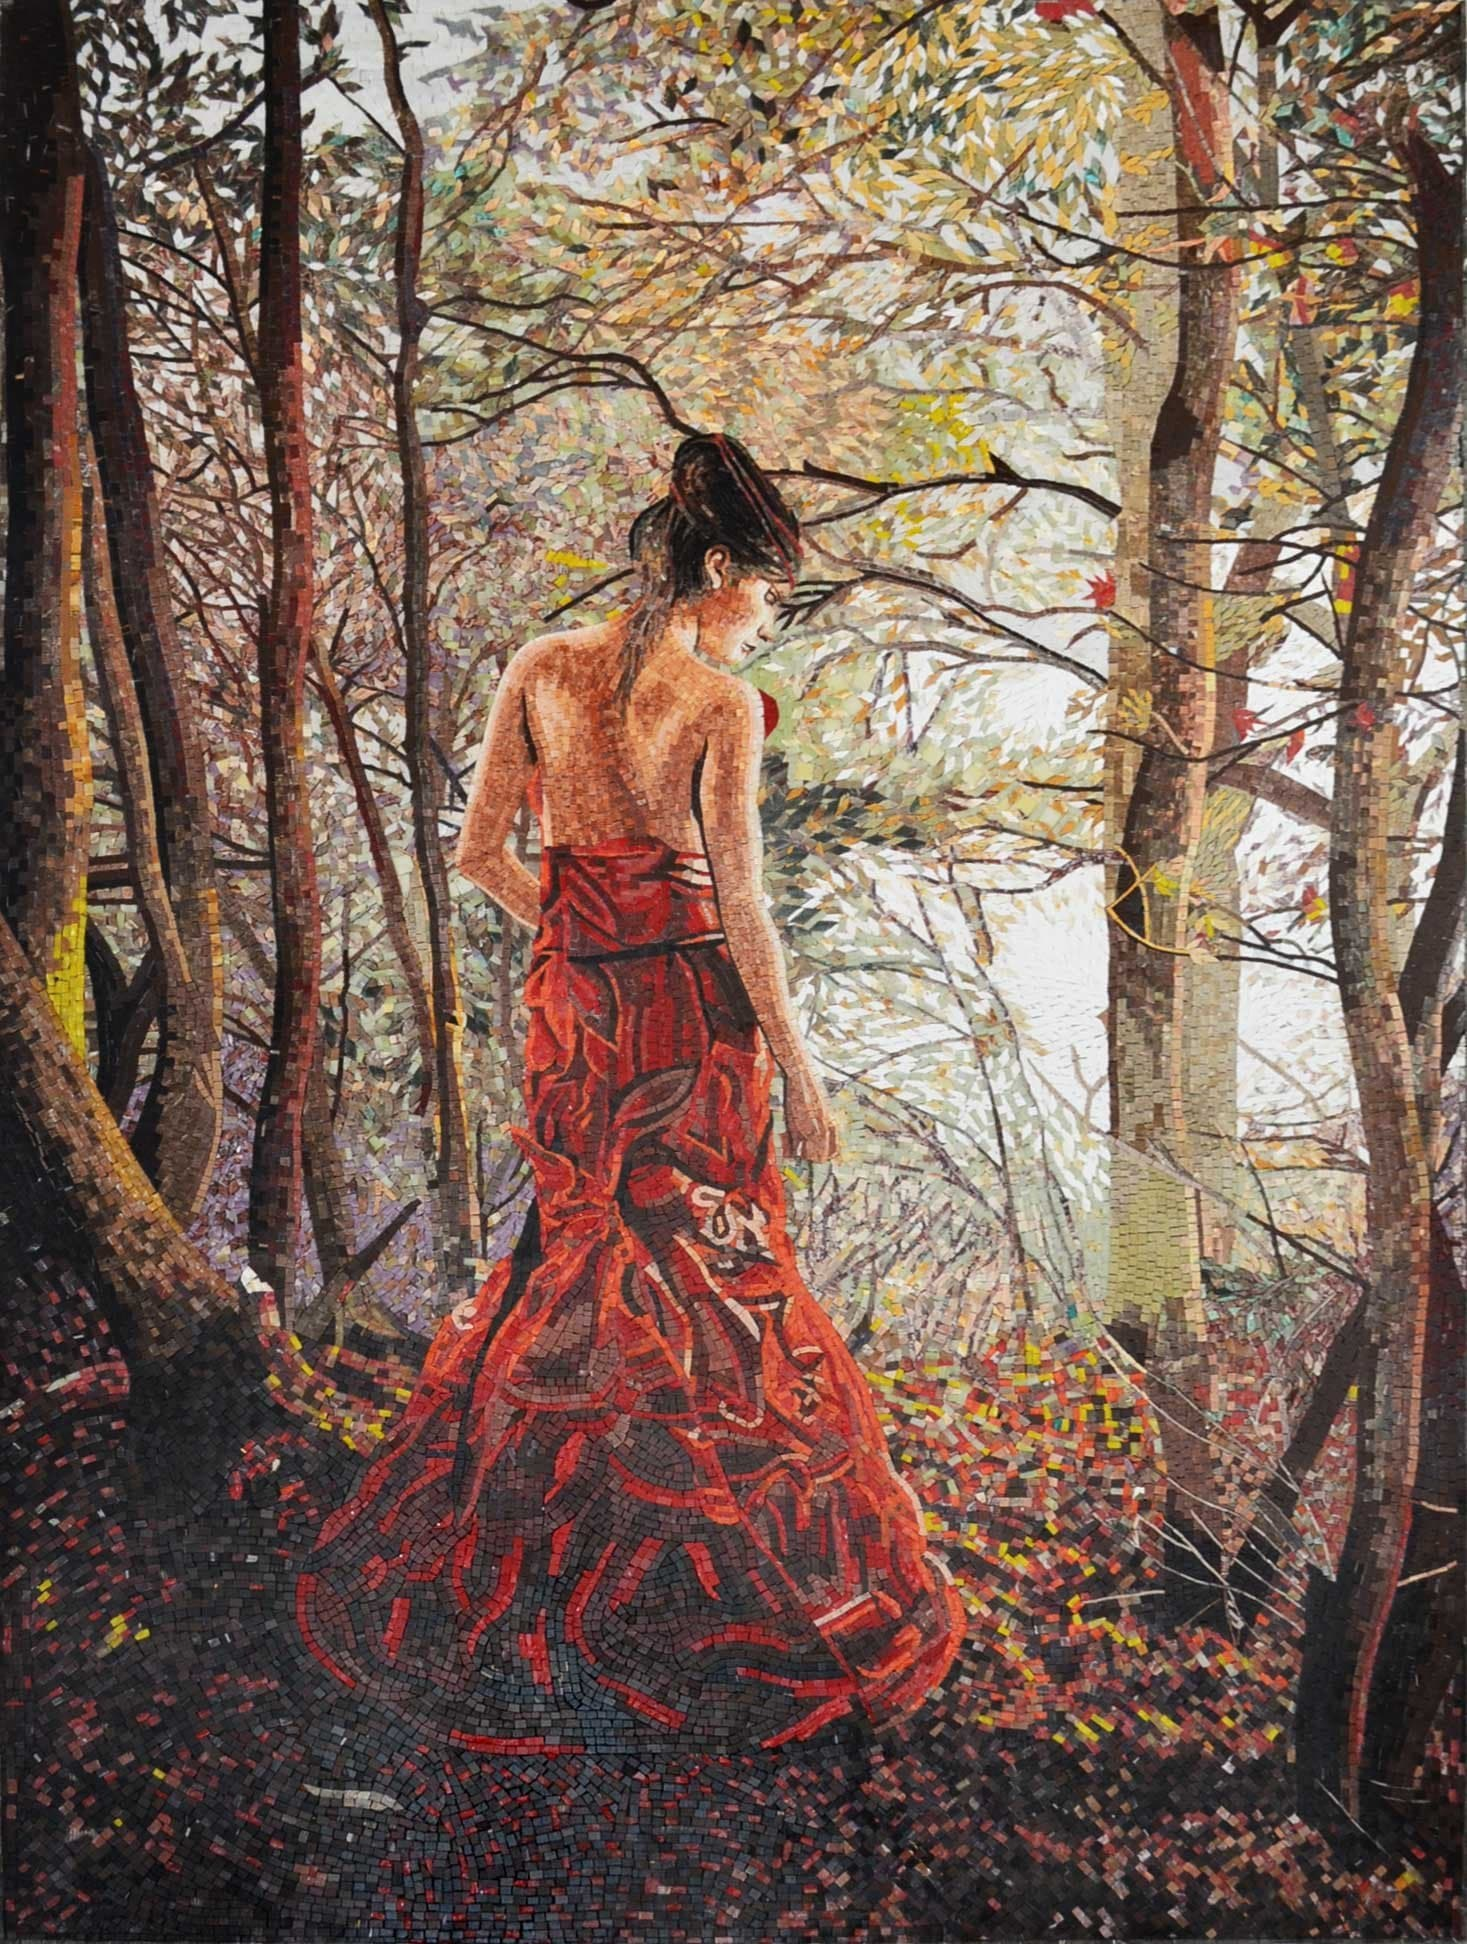 Lady In The Woods Marble Mosaic Mural Pic